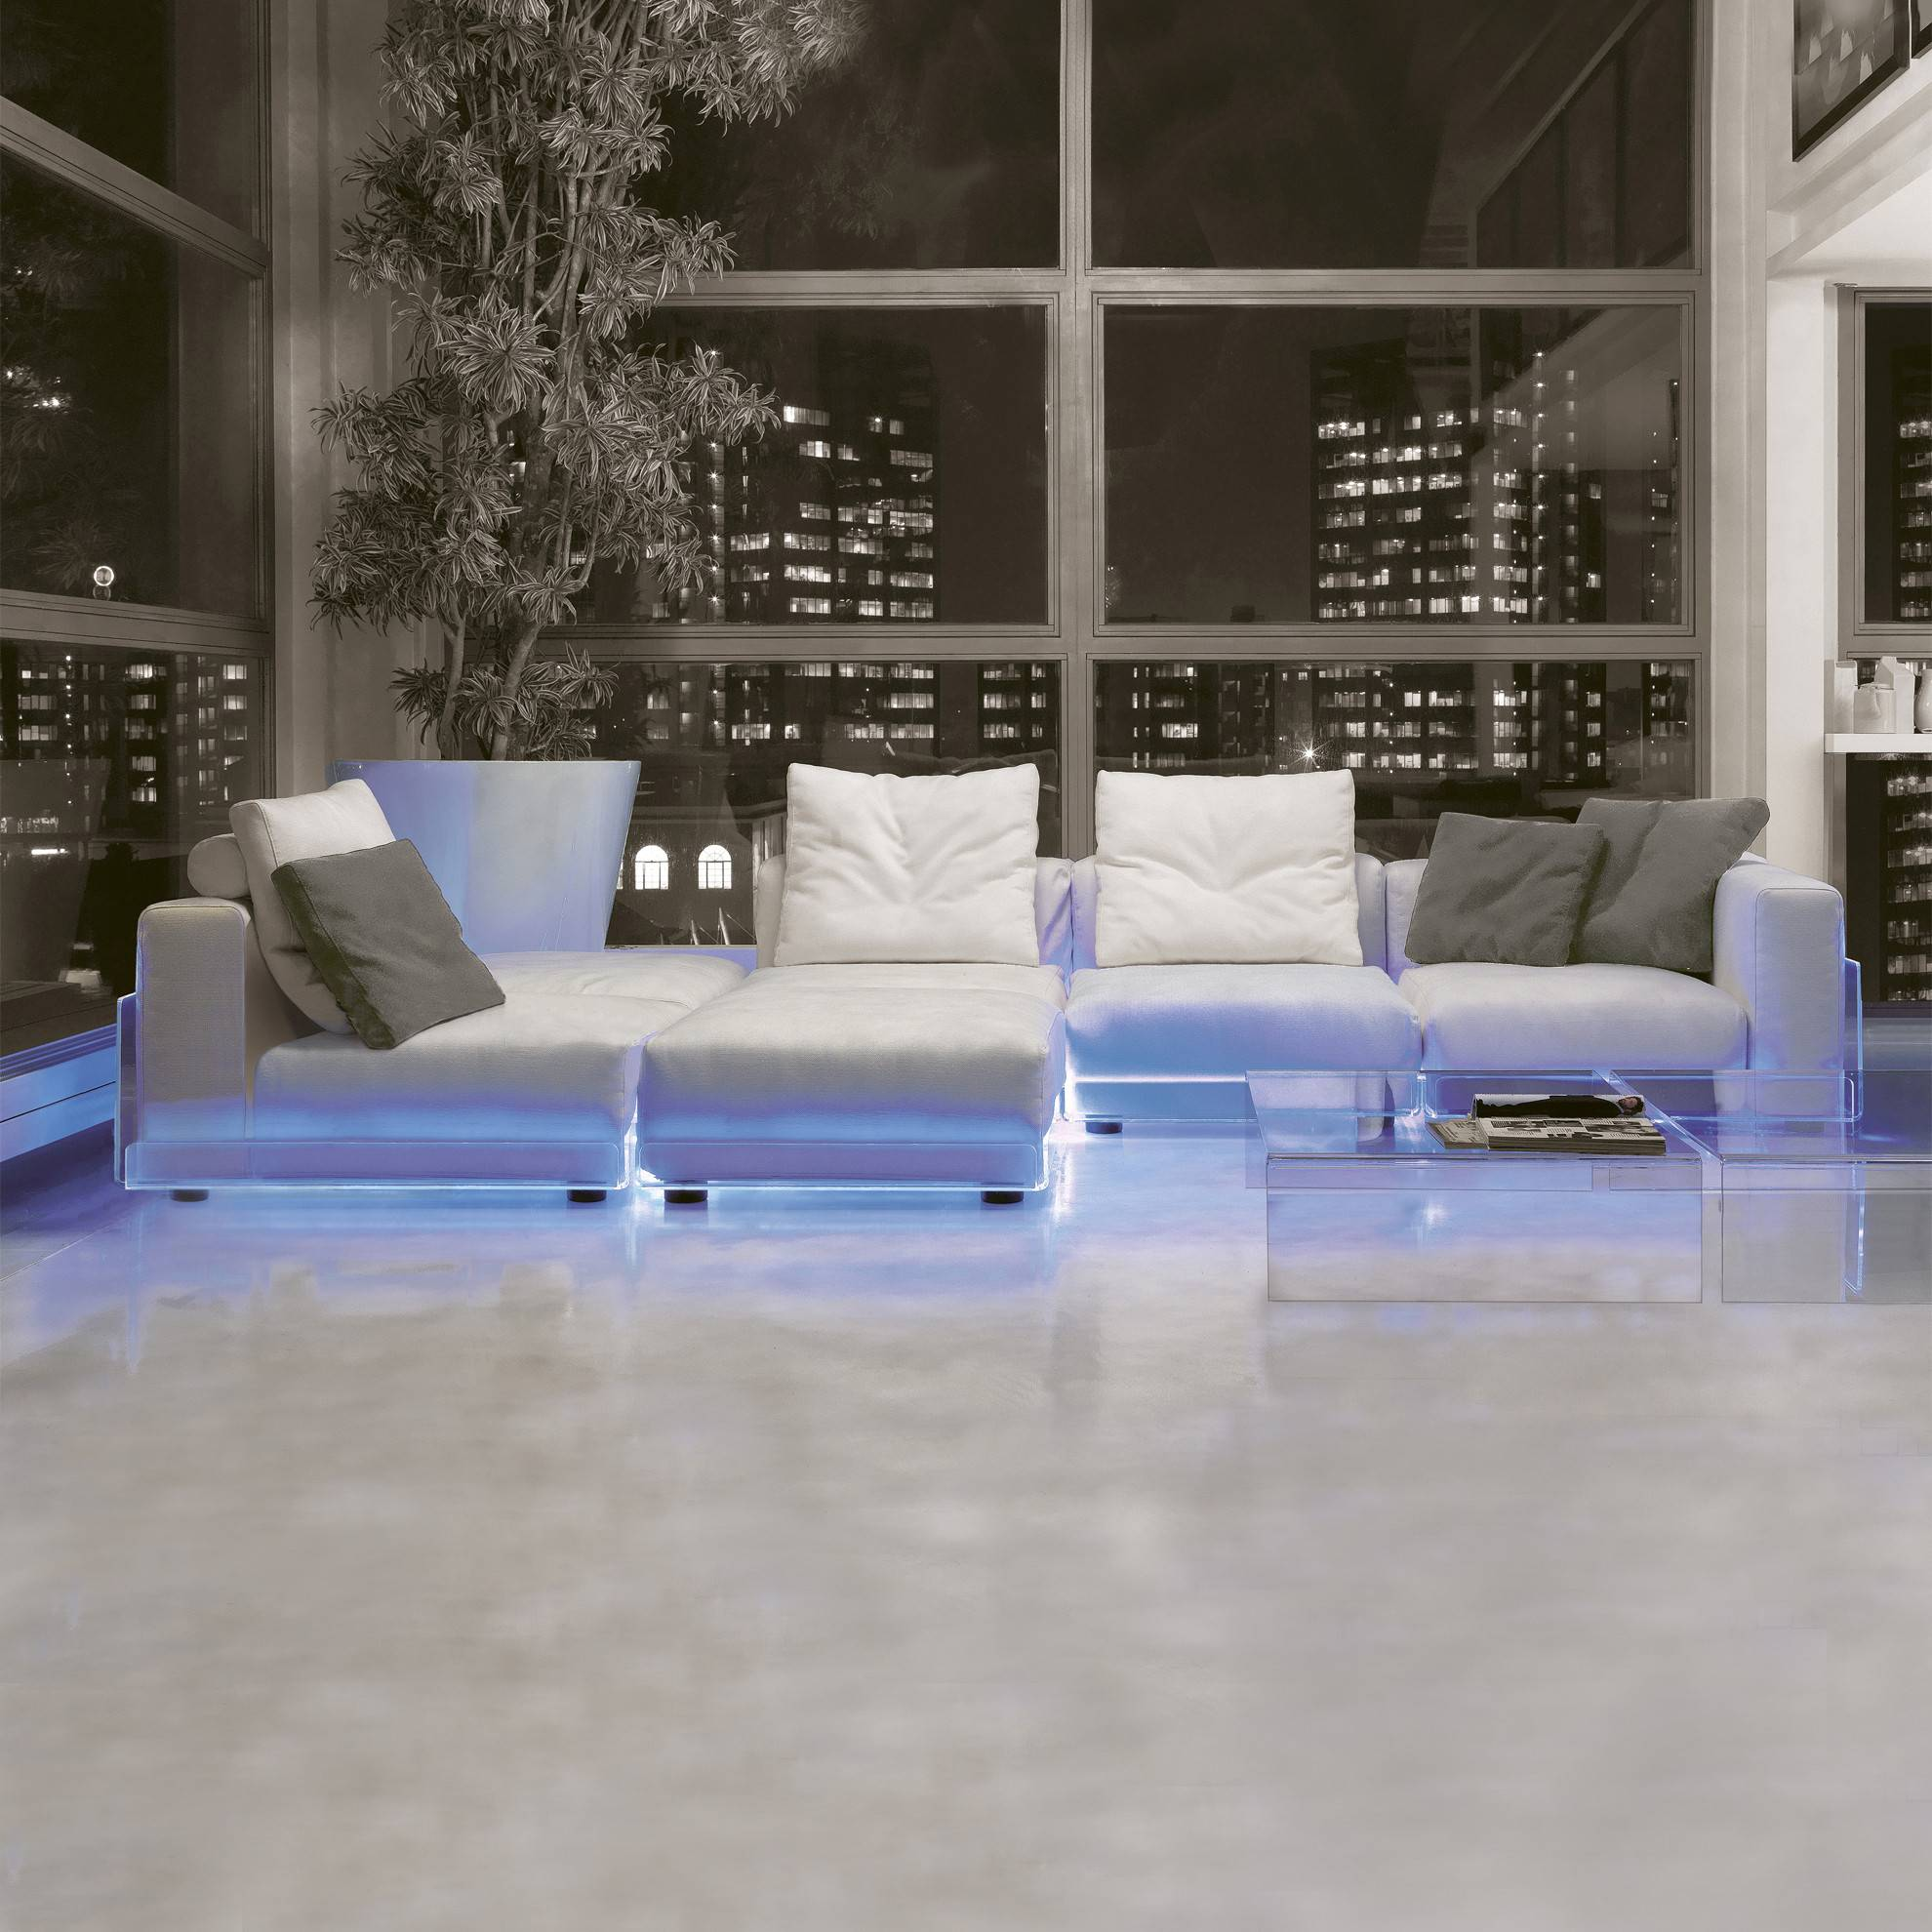 Sofas With Built In Led Mood Lighting Designs Ideas On Dornob